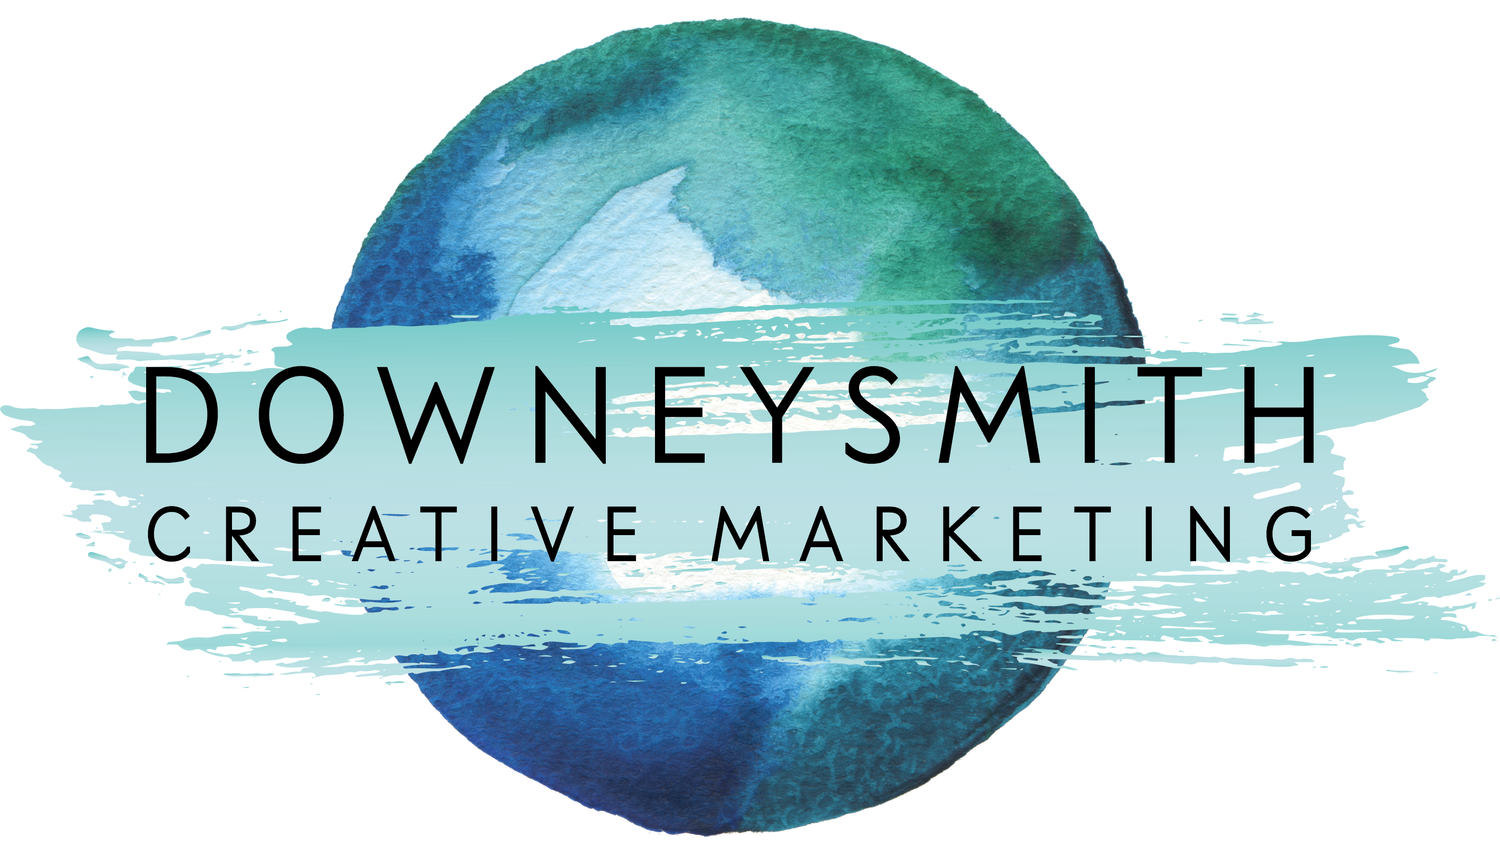 Downeysmith Creative Marketing